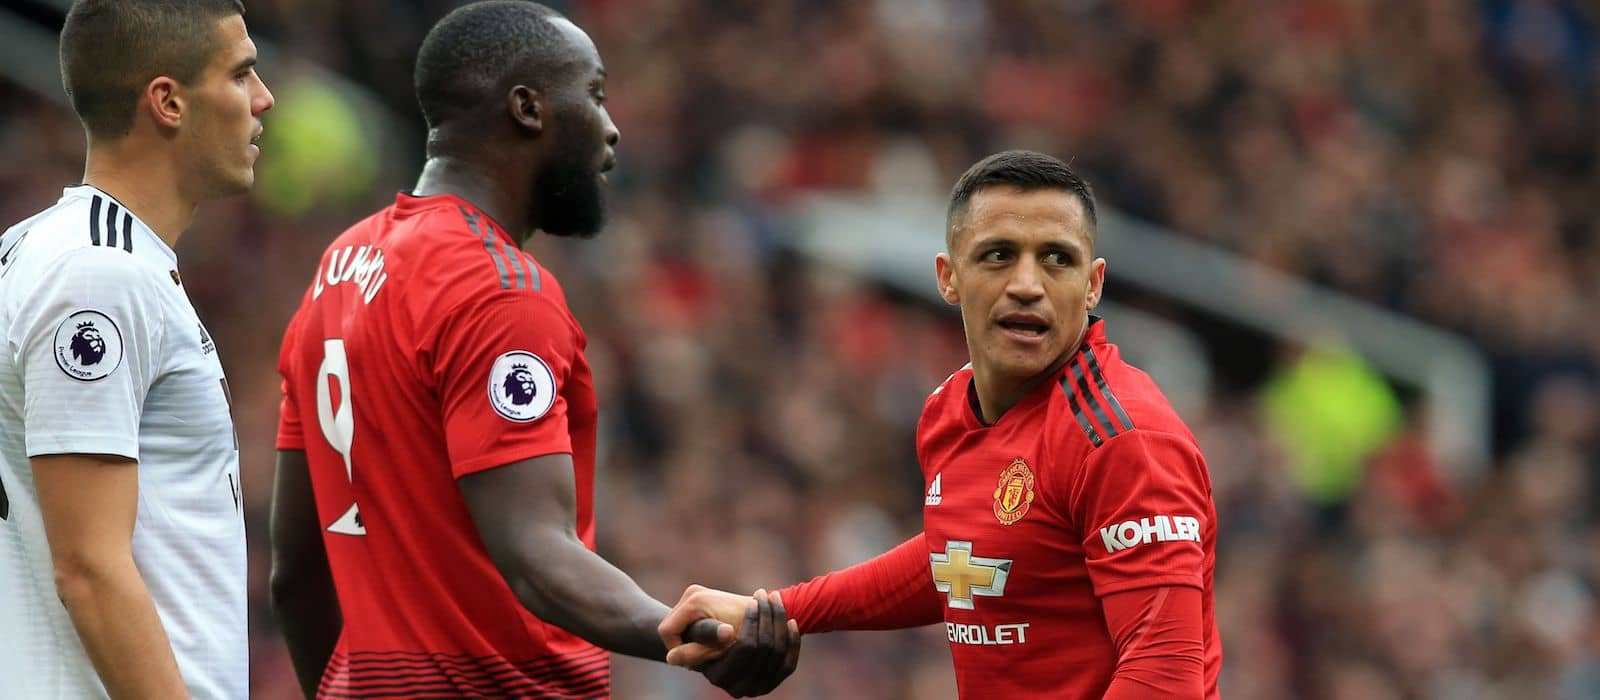 Gary Neville: Romelu Lukaku should be dropped for Liverpool clash